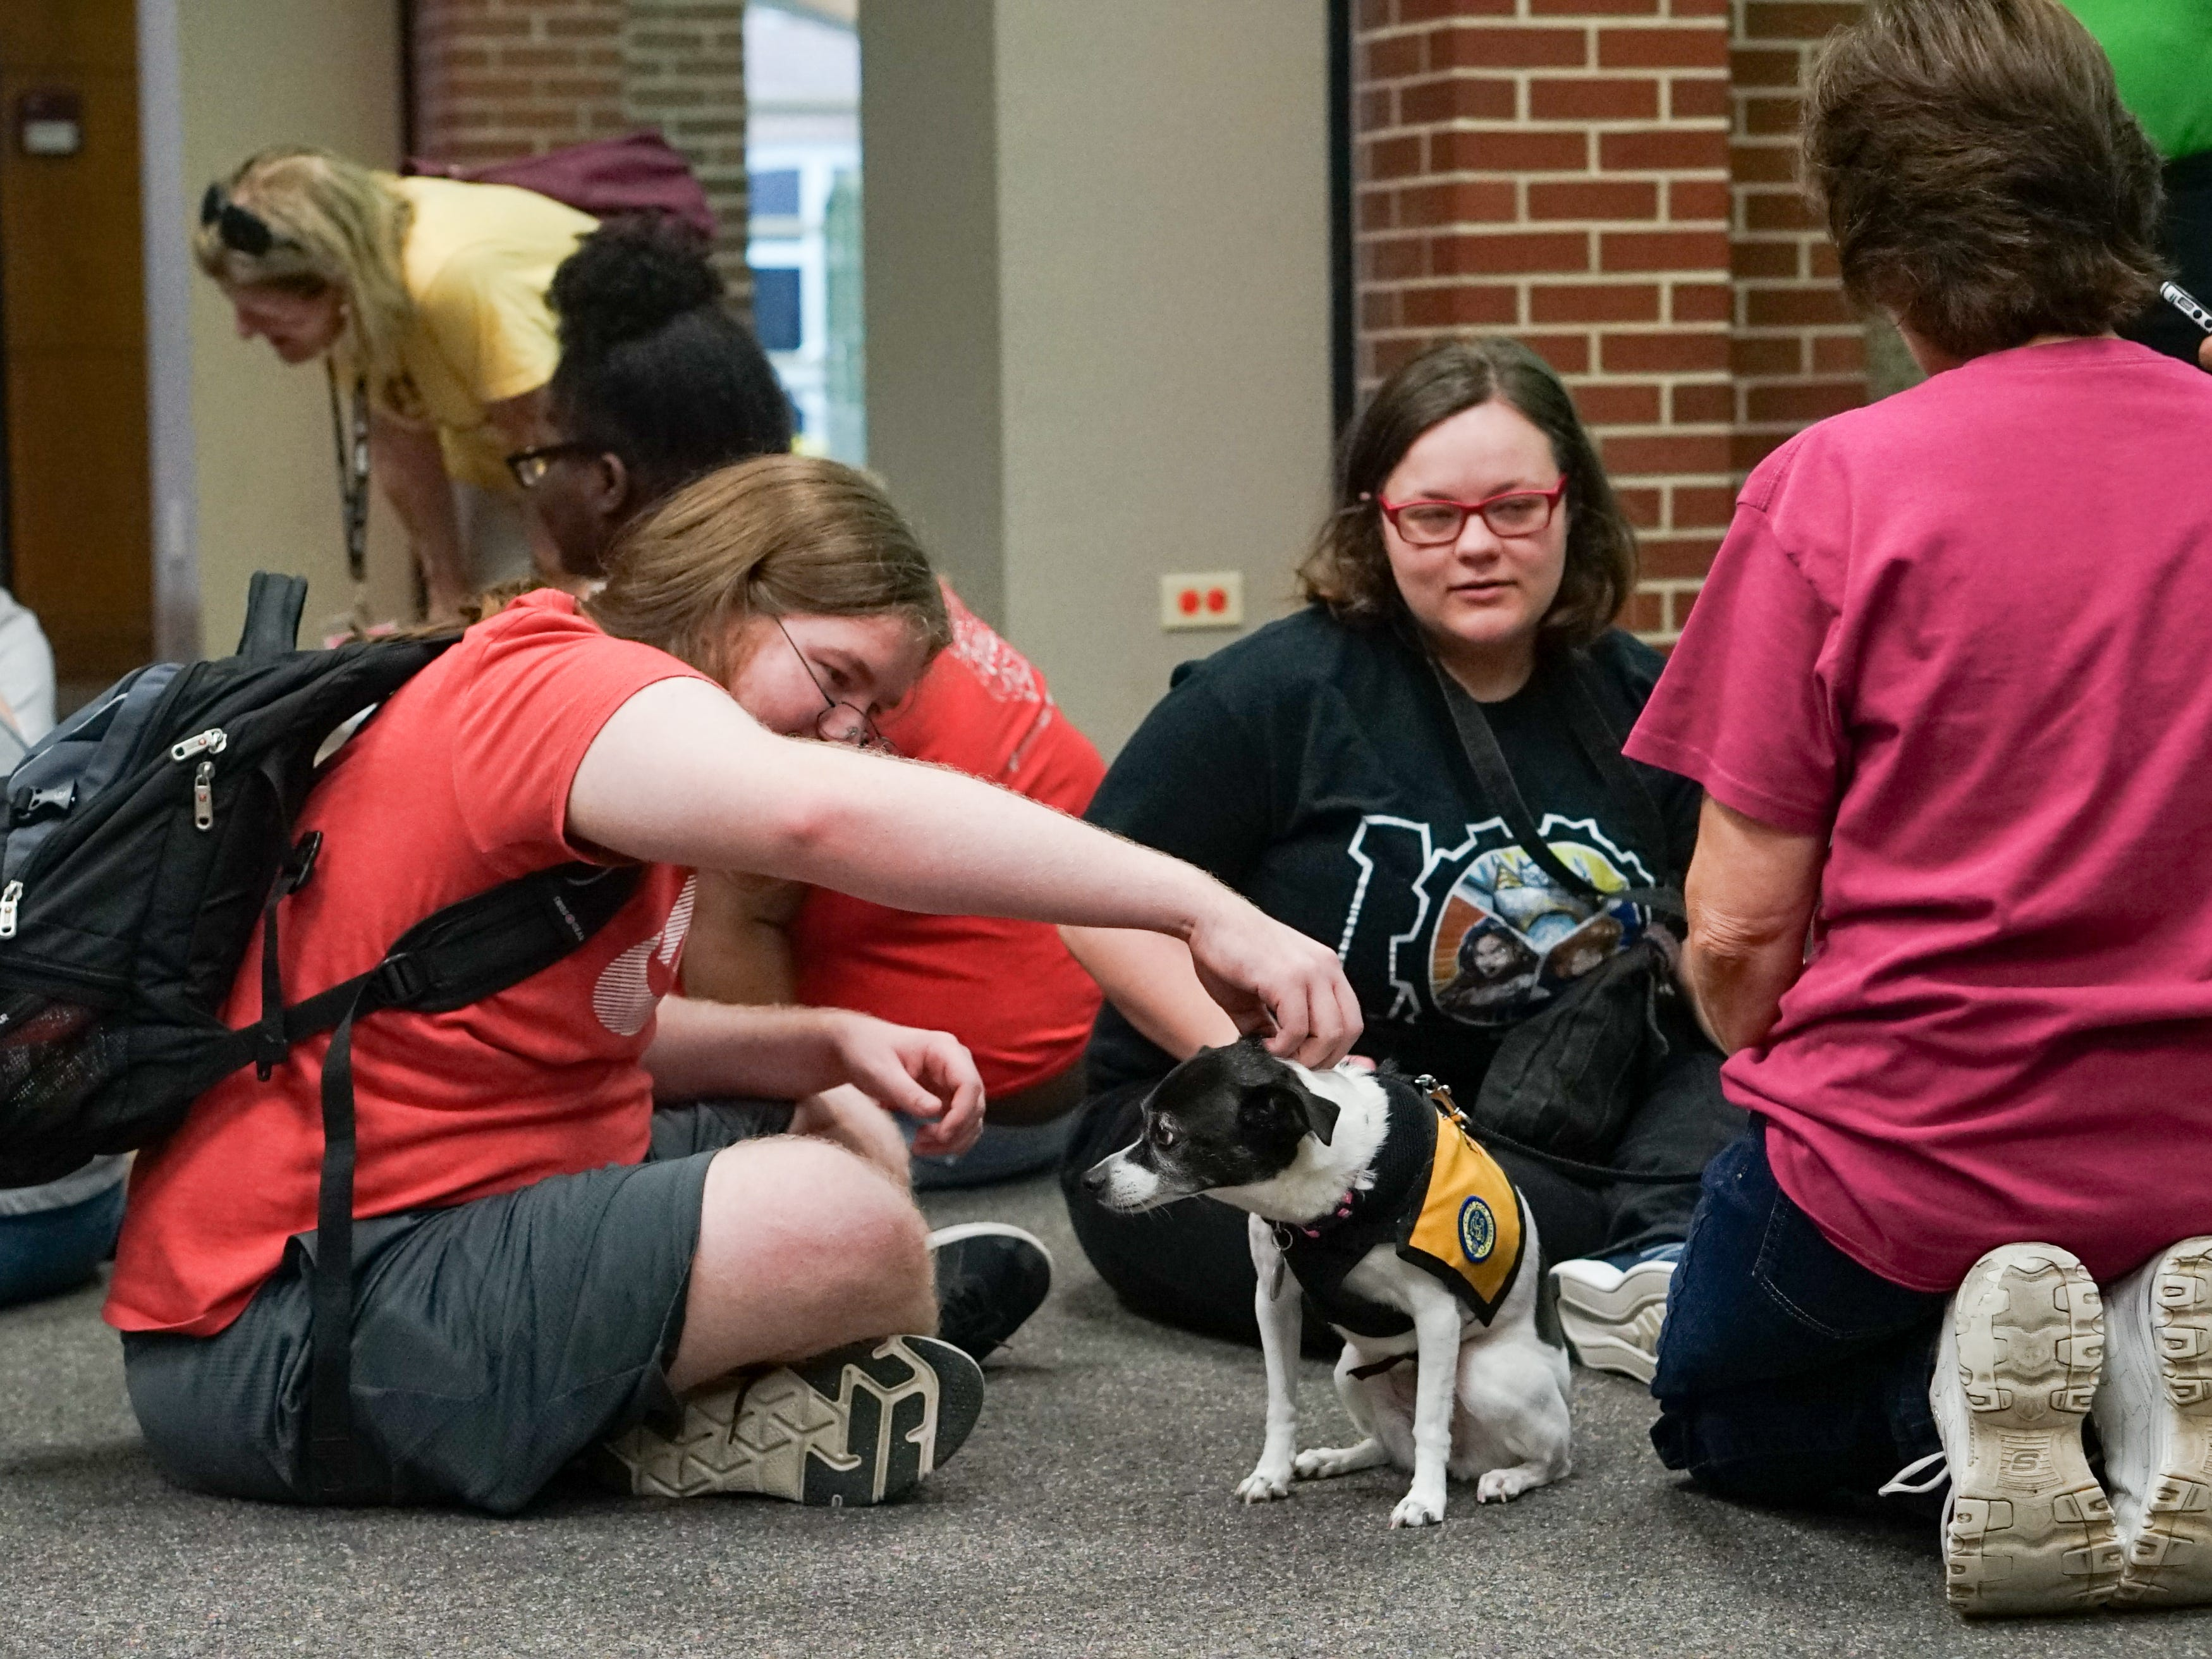 Students crowd around a therapy dog in the Edith Garland Dupré Library Wednesday, May 8, 2019. The University of Louisiana at Lafayette helps students to relieve stress during finals week by bringing therapy animals, to the library as part of Stress Relief Week. The therapy dogs are provided by Pet Partners of Acadiana, a non-profit organization with registered therapy animals, including birds, miniature horses, rabbits and  llamas.